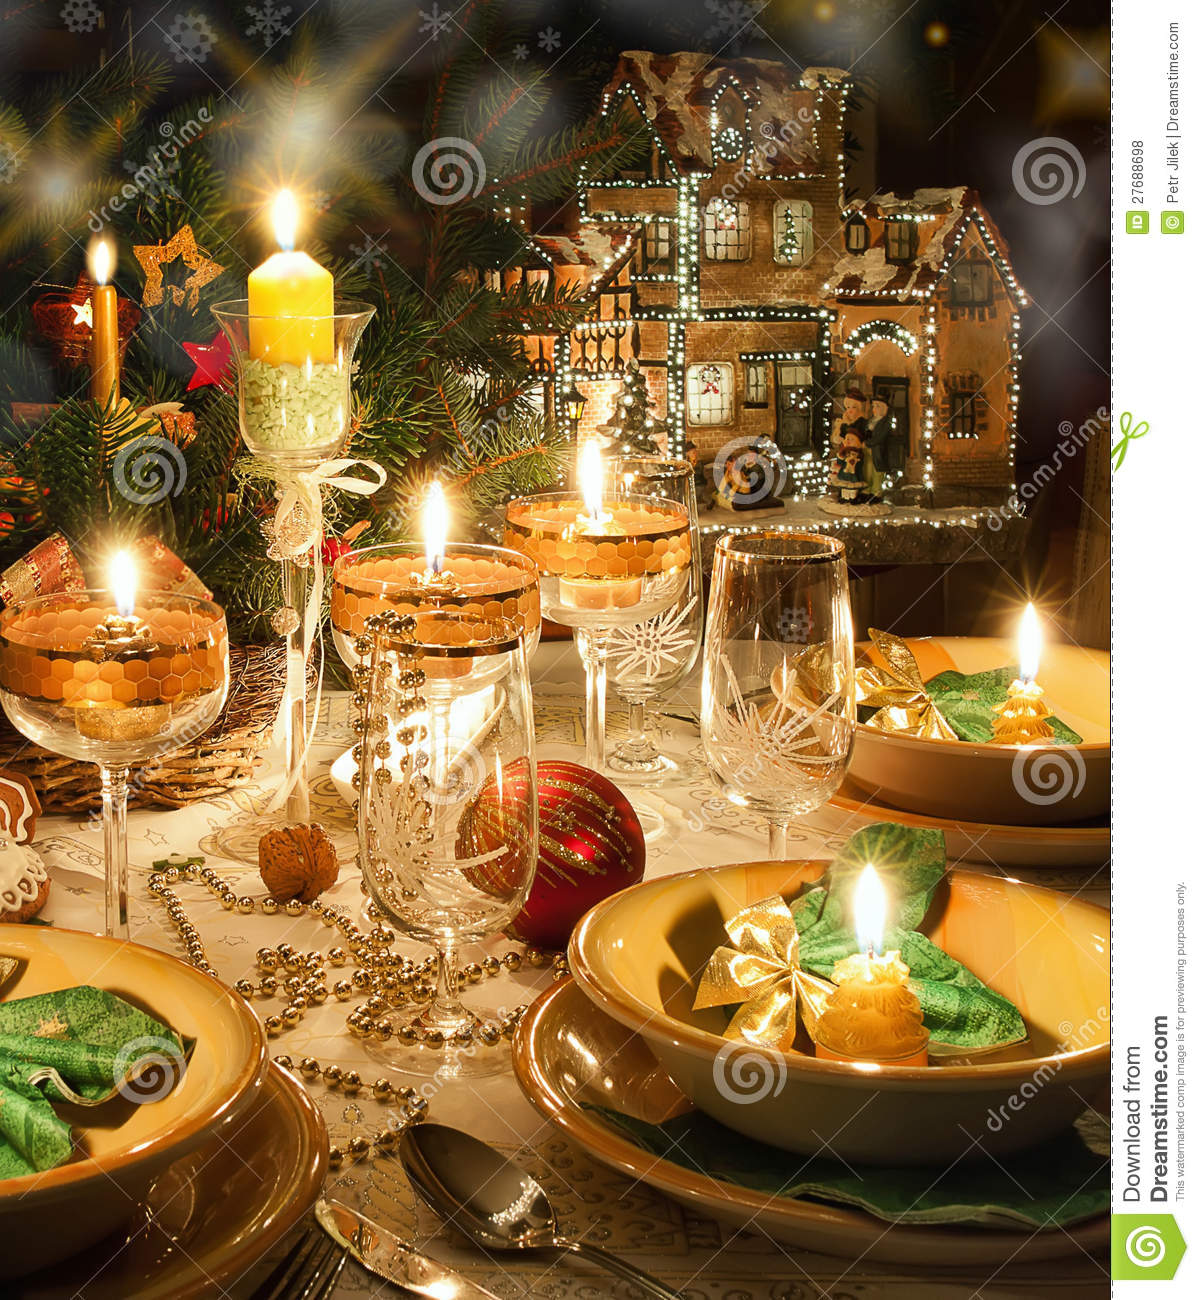 Free Christmas Dinner.Christmas Dinner Table With Christmas Mood Stock Photo